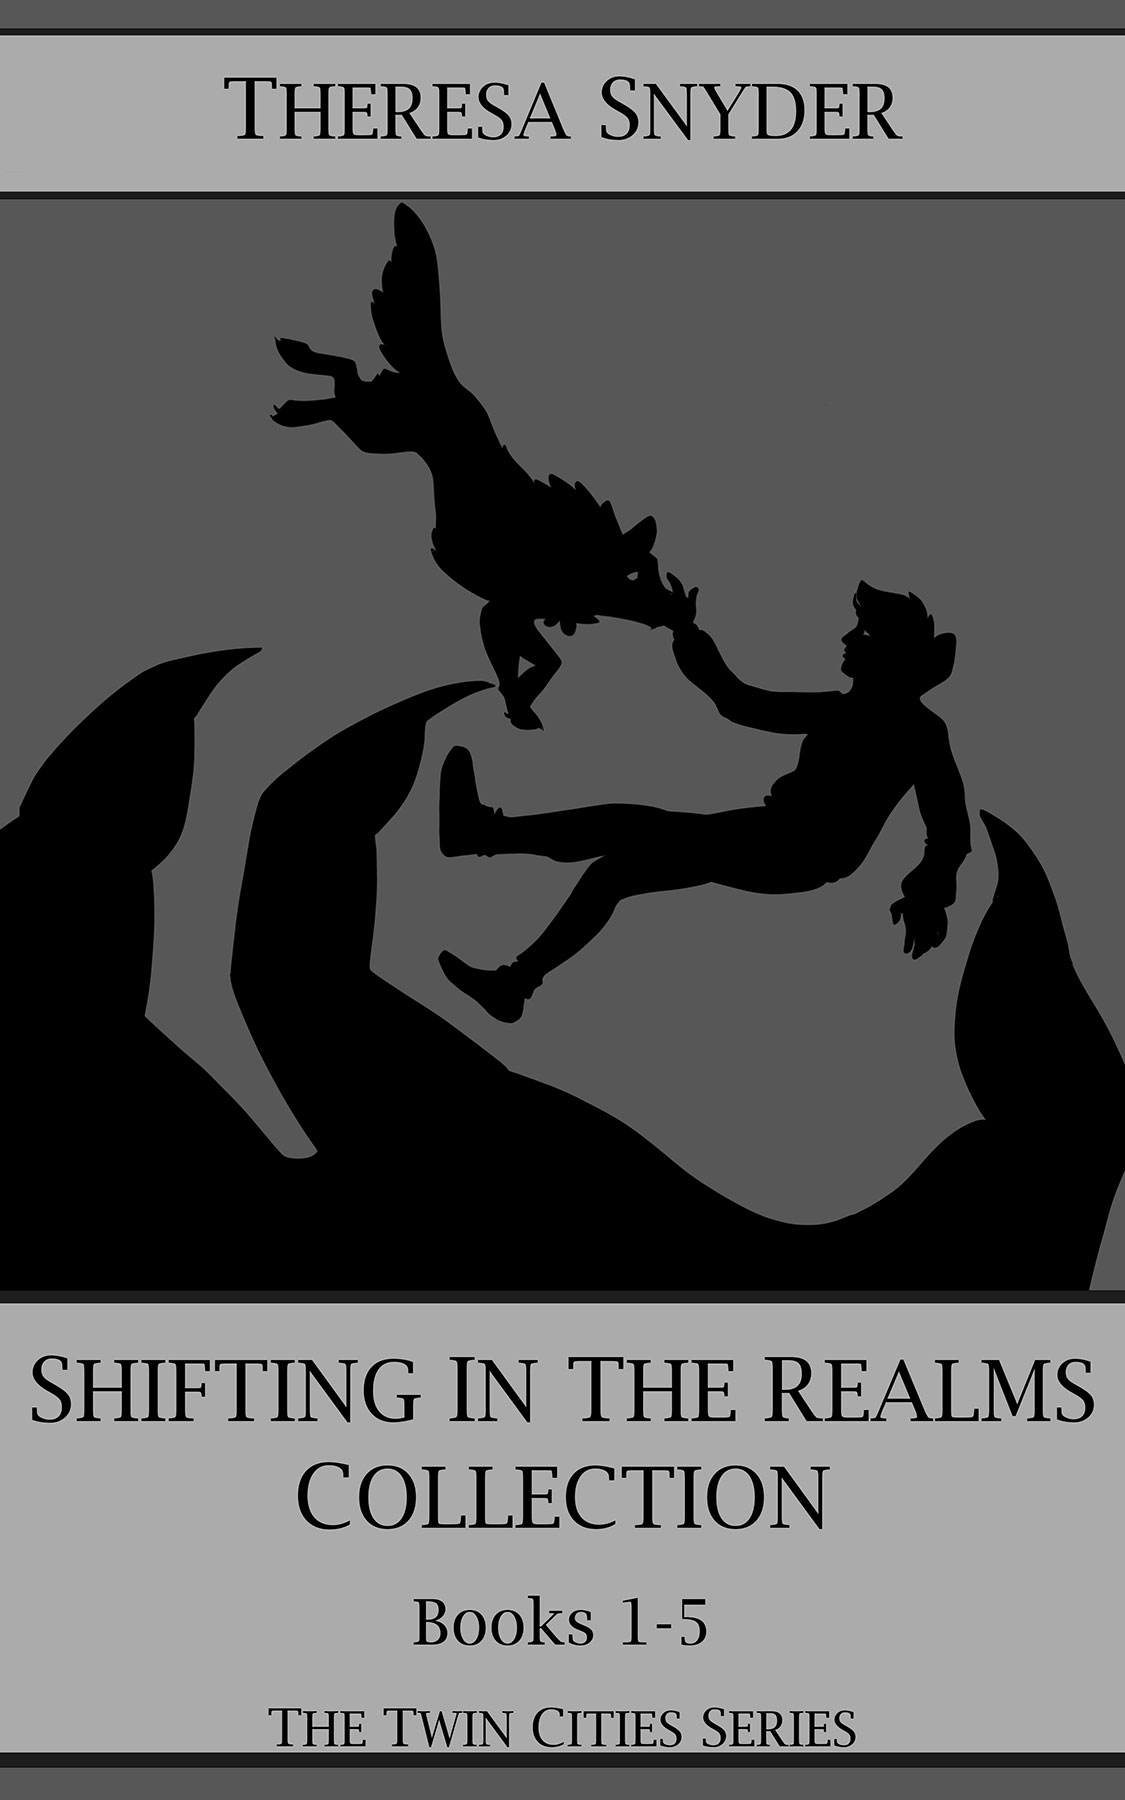 Shifting in The Realms Collection - Books 1-5